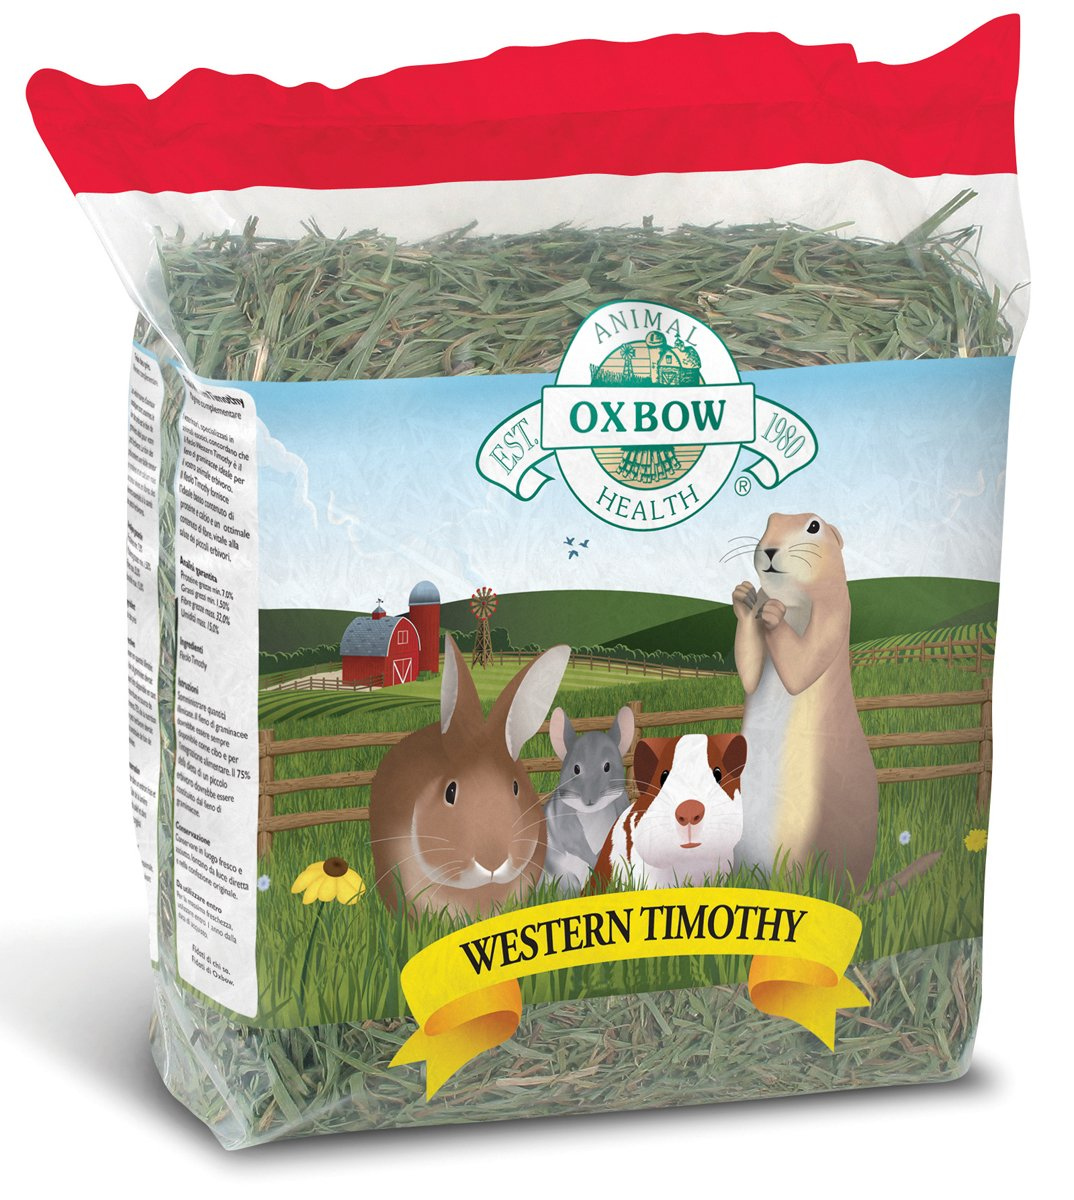 Oxbow Animal Health Western Timothy Hay For Pets, 50-Pound by Oxbow Animal Health